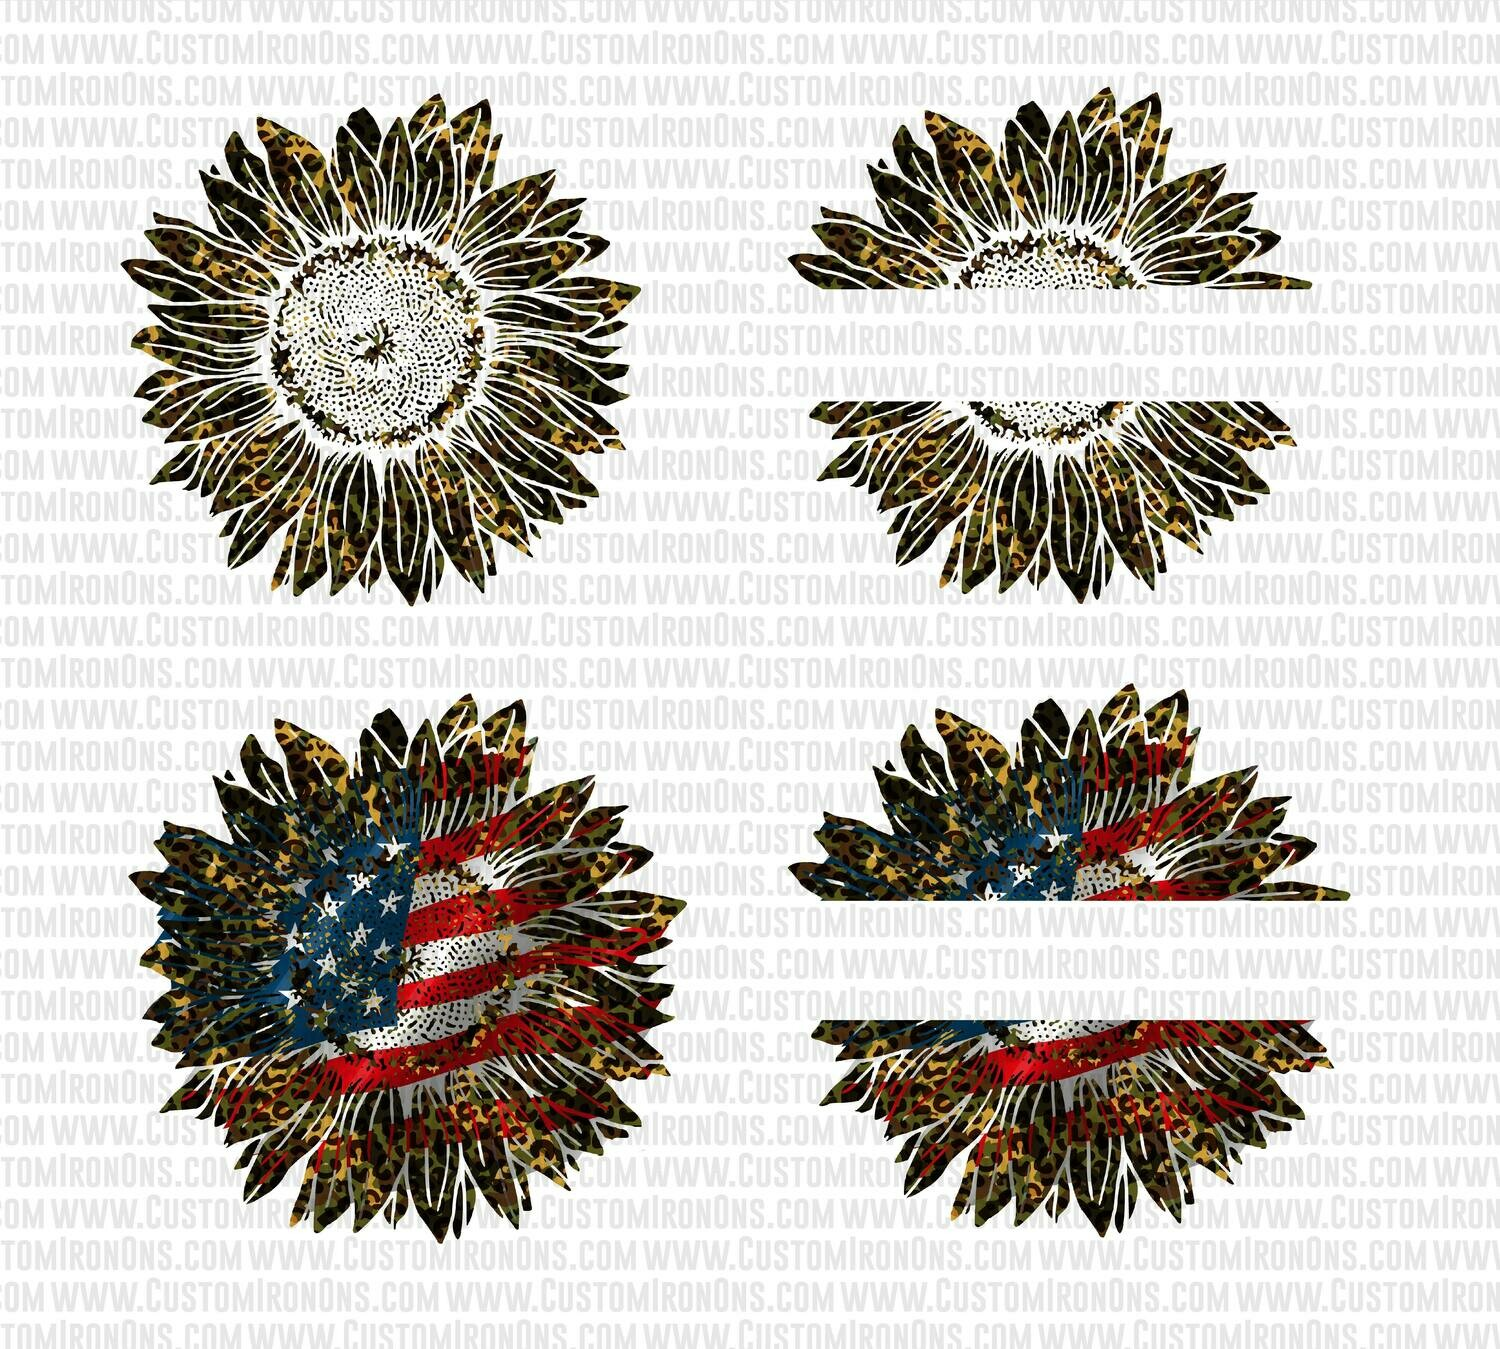 Sunflower - Camo + Leopard +USA SPLIT FLOWERS - PNG Sublimation